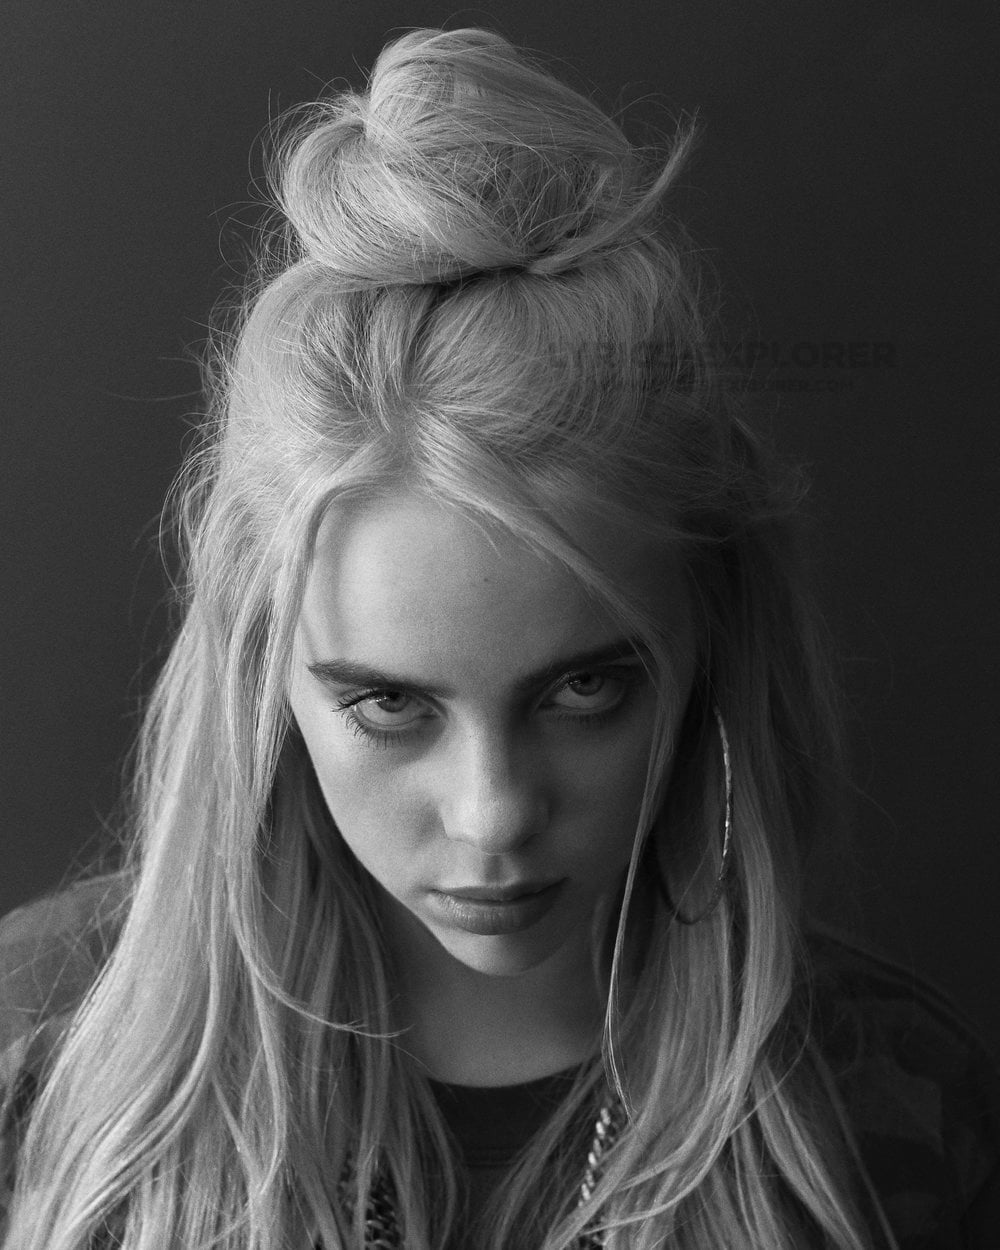 You are currently viewing The Hill Lyrics in English – Billie Eilish Lyrics